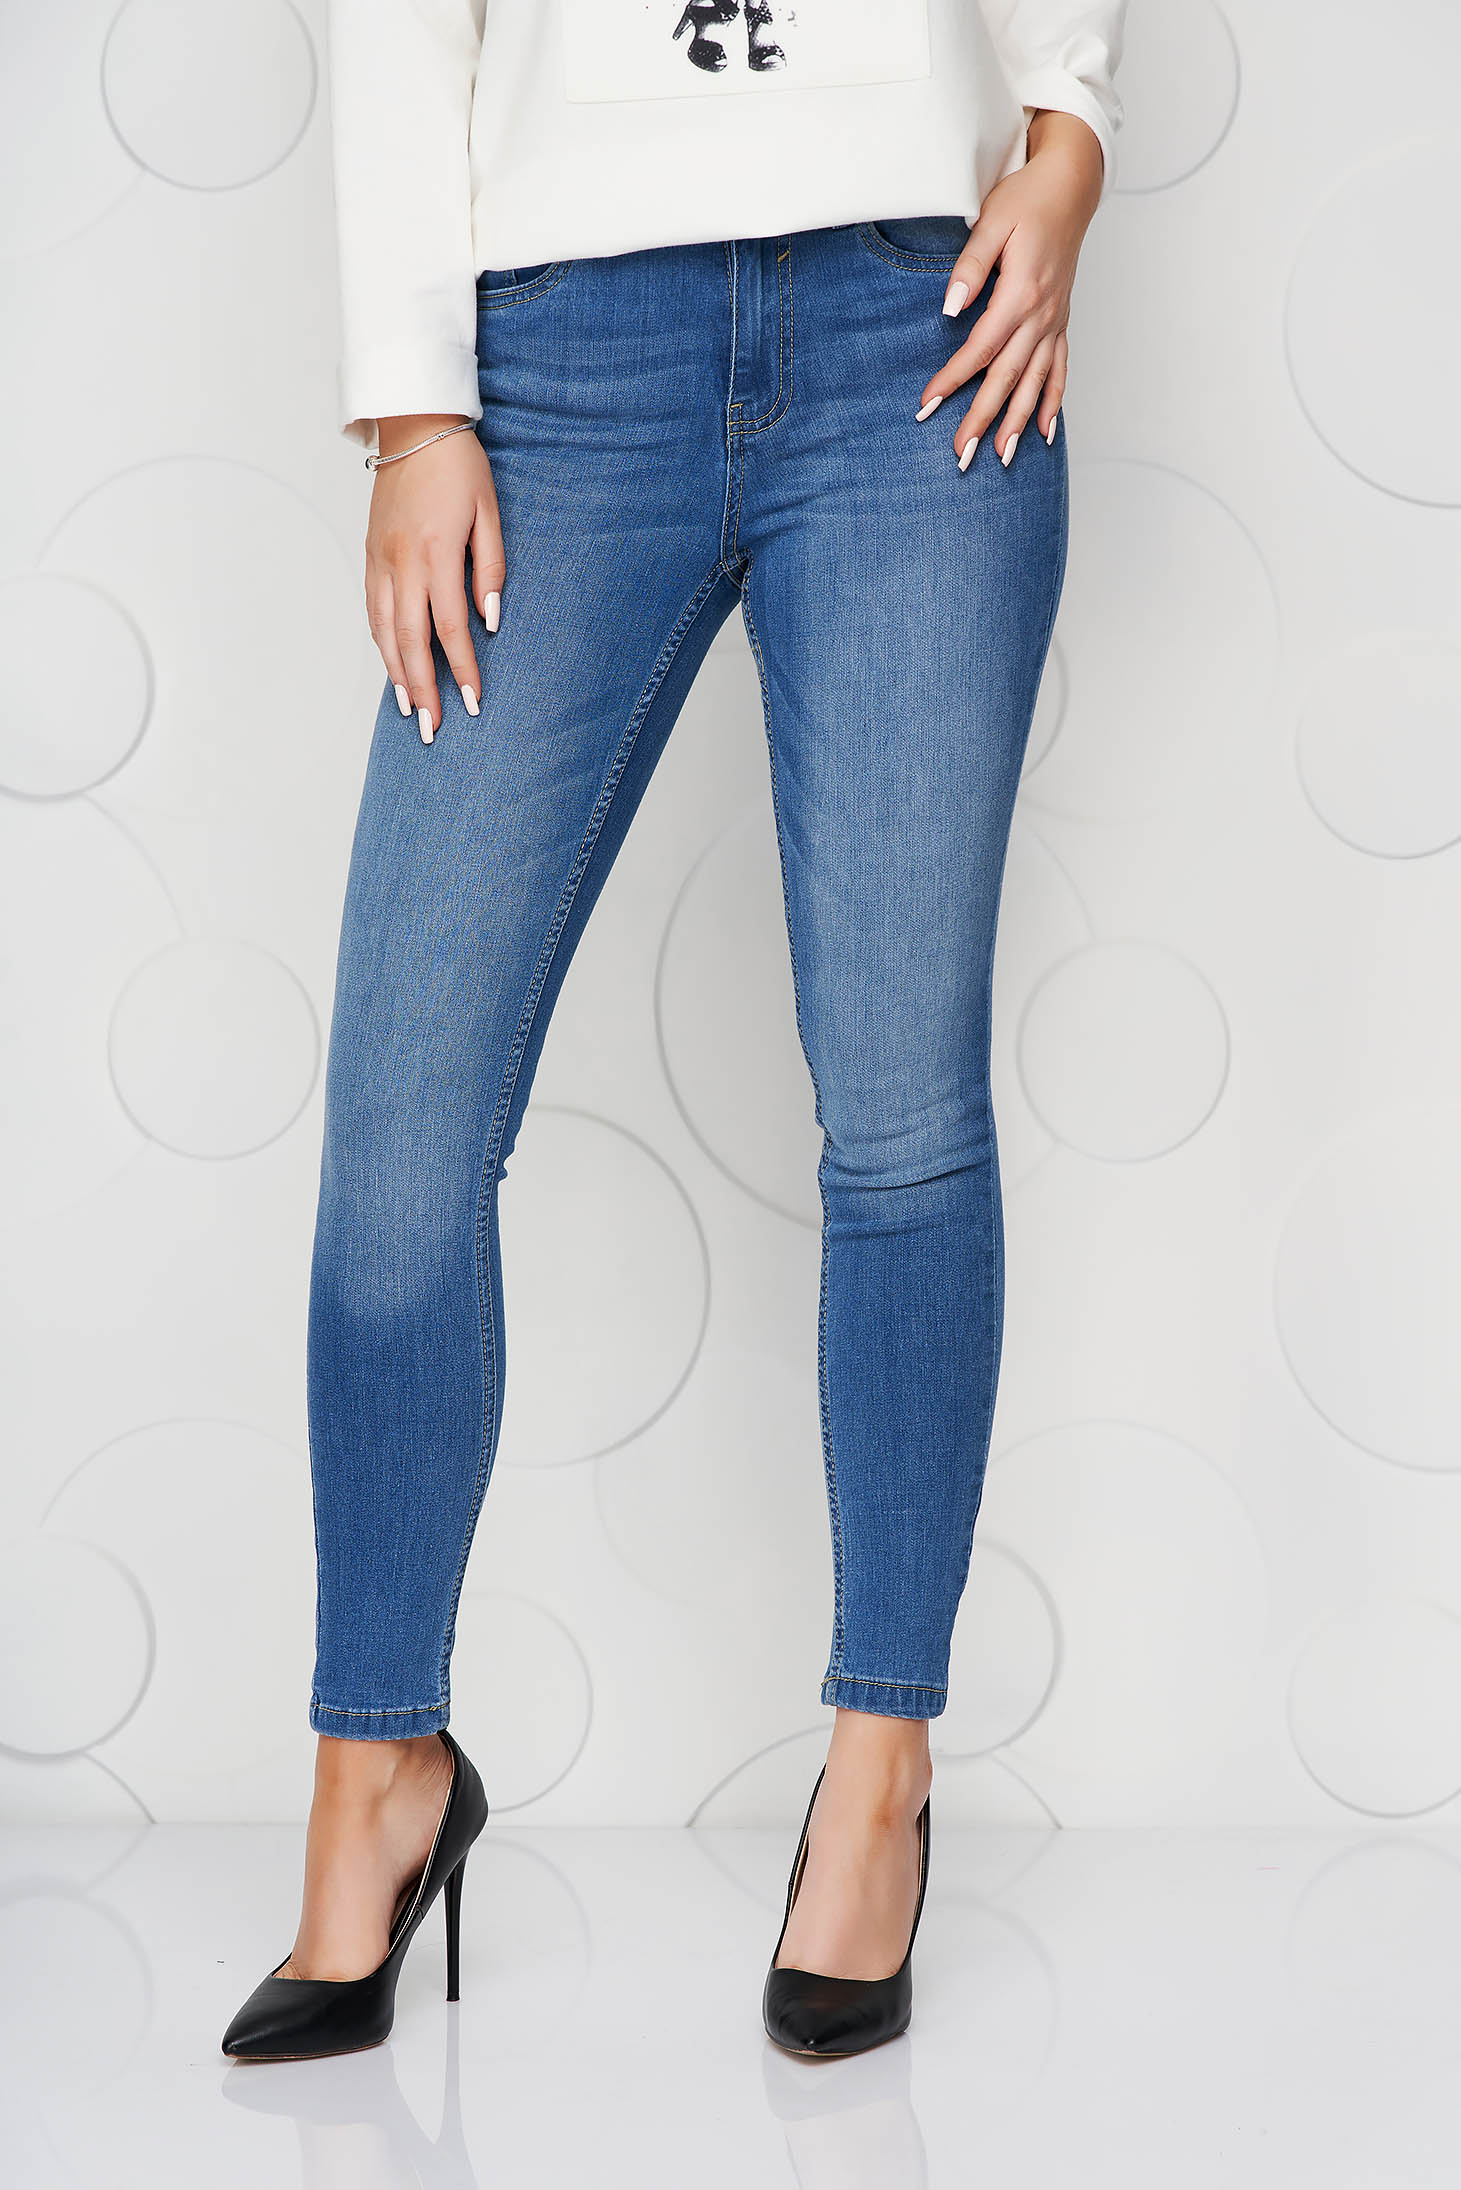 Blue jeans casual skinny jeans slightly elastic cotton with medium waist